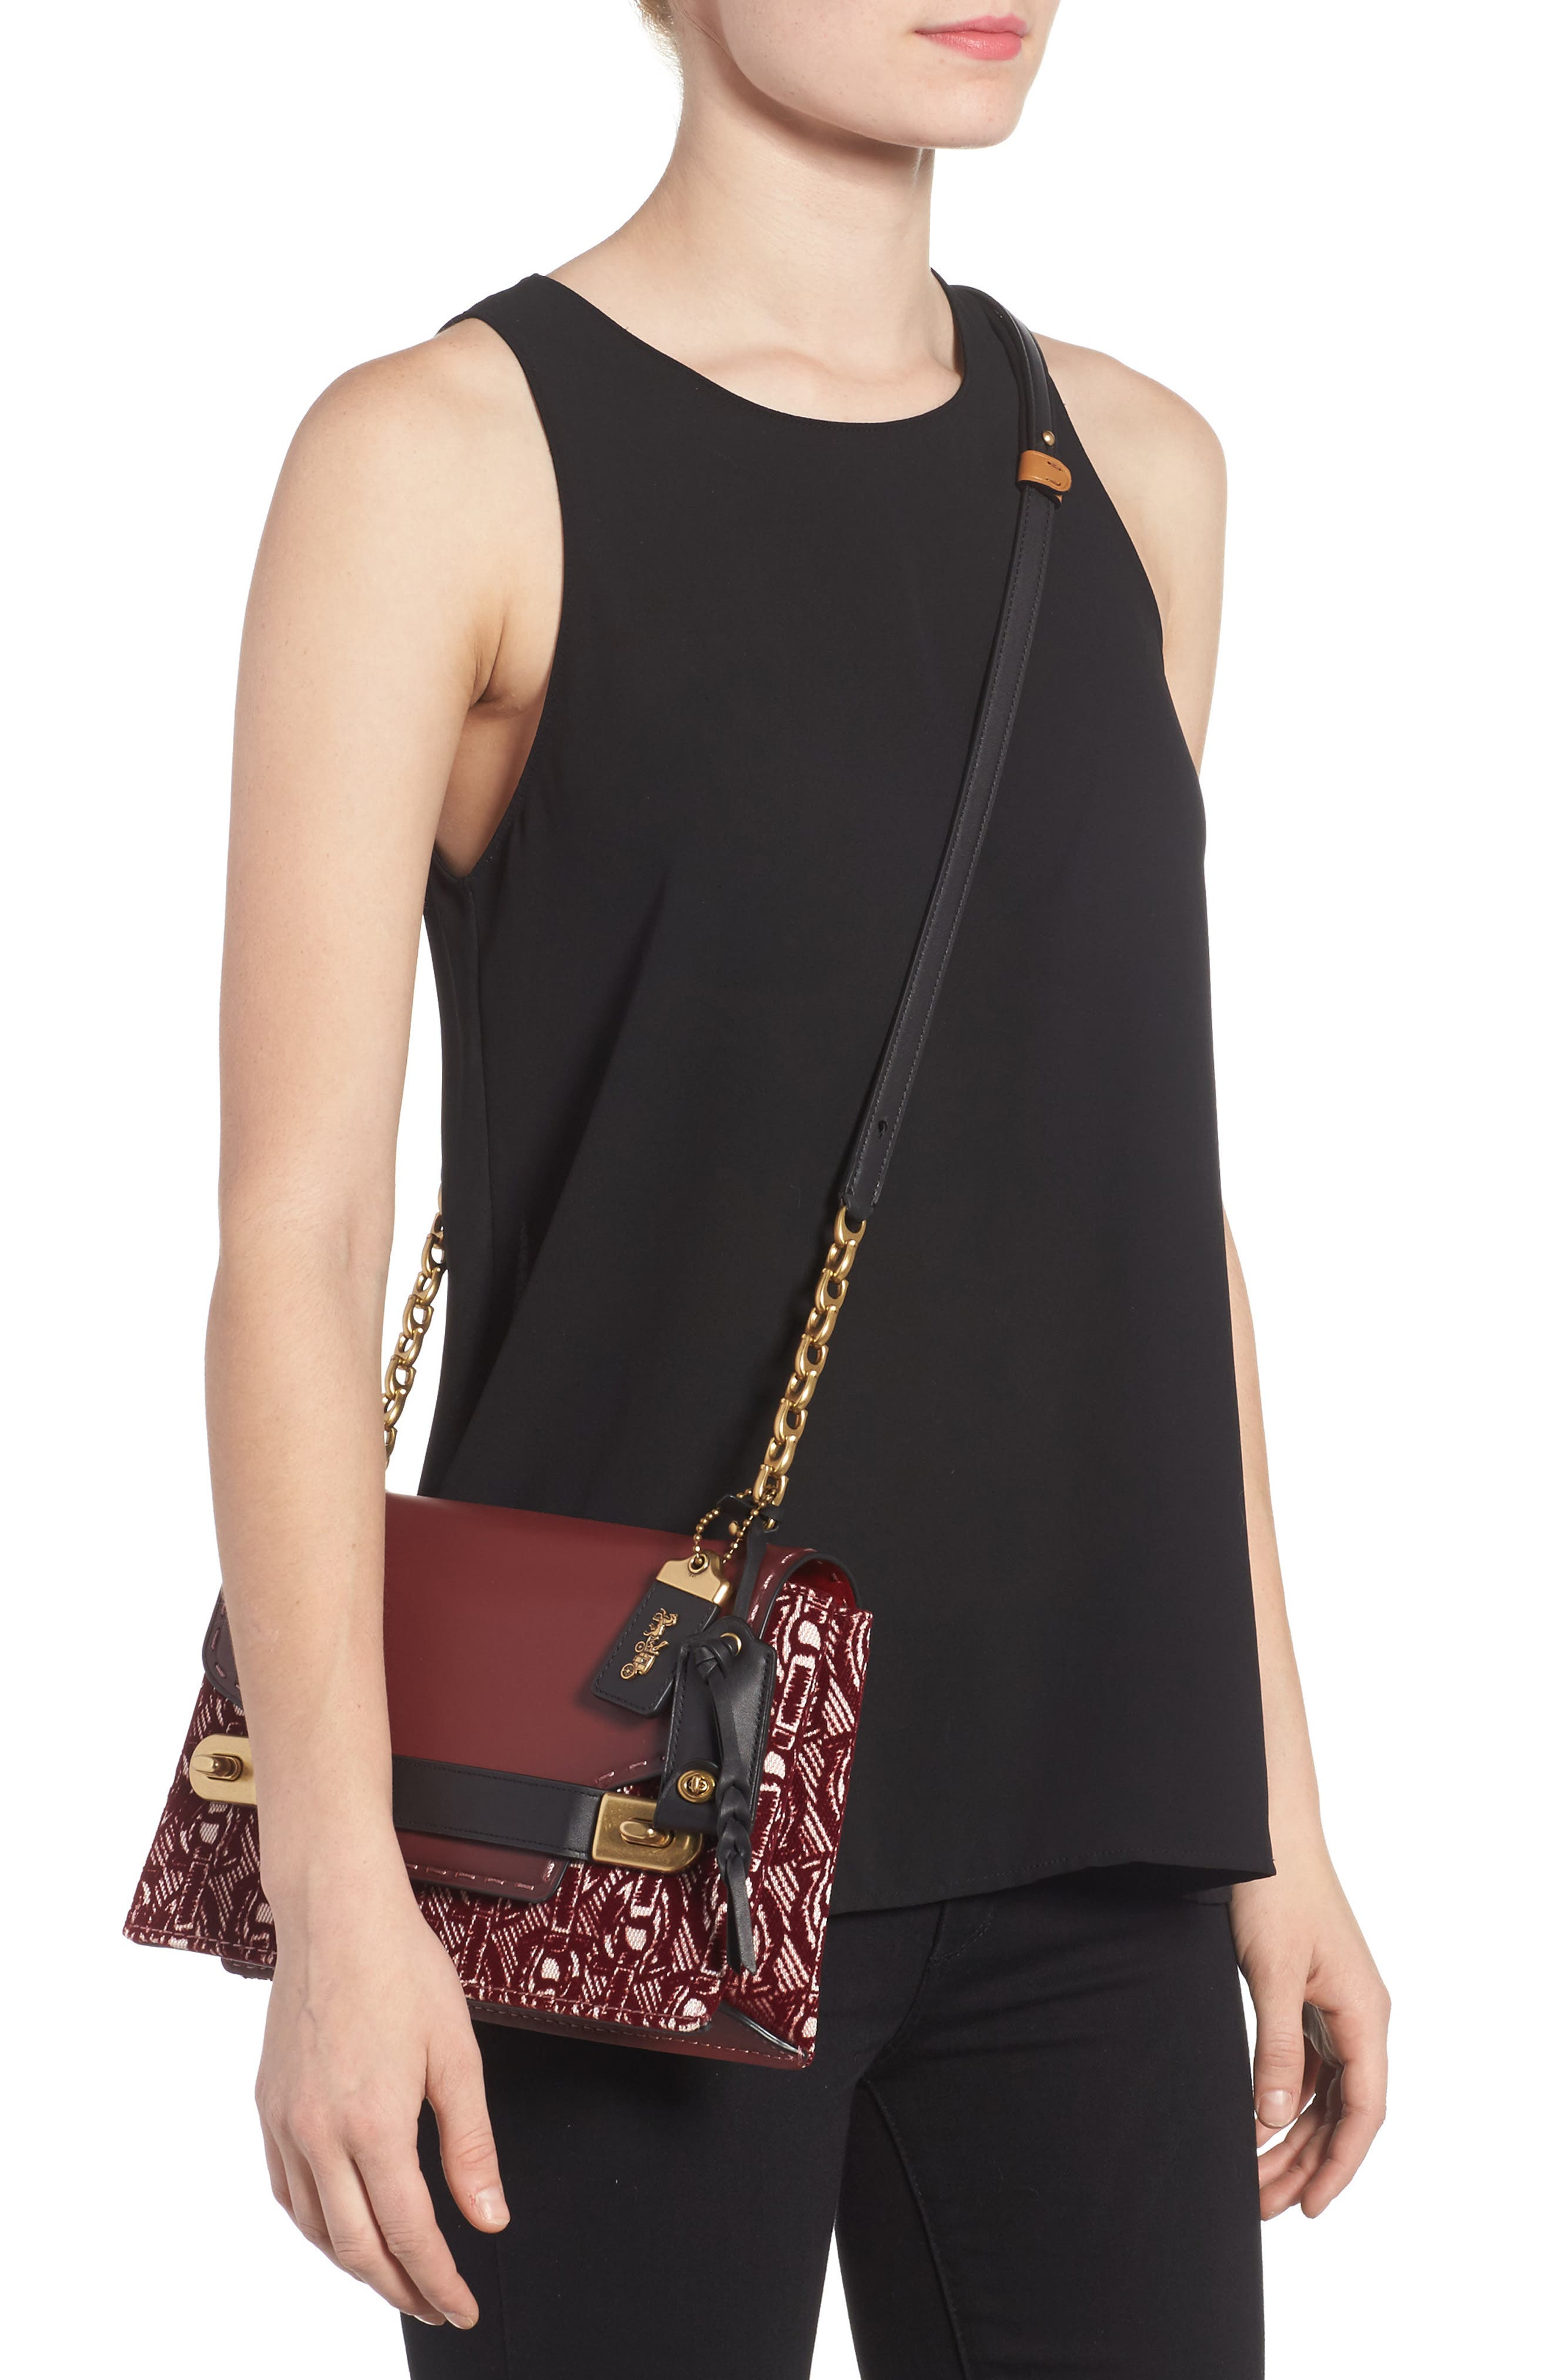 Swagger Chain Leather Crossbody Bag,                             Alternate thumbnail 2, color,                             930